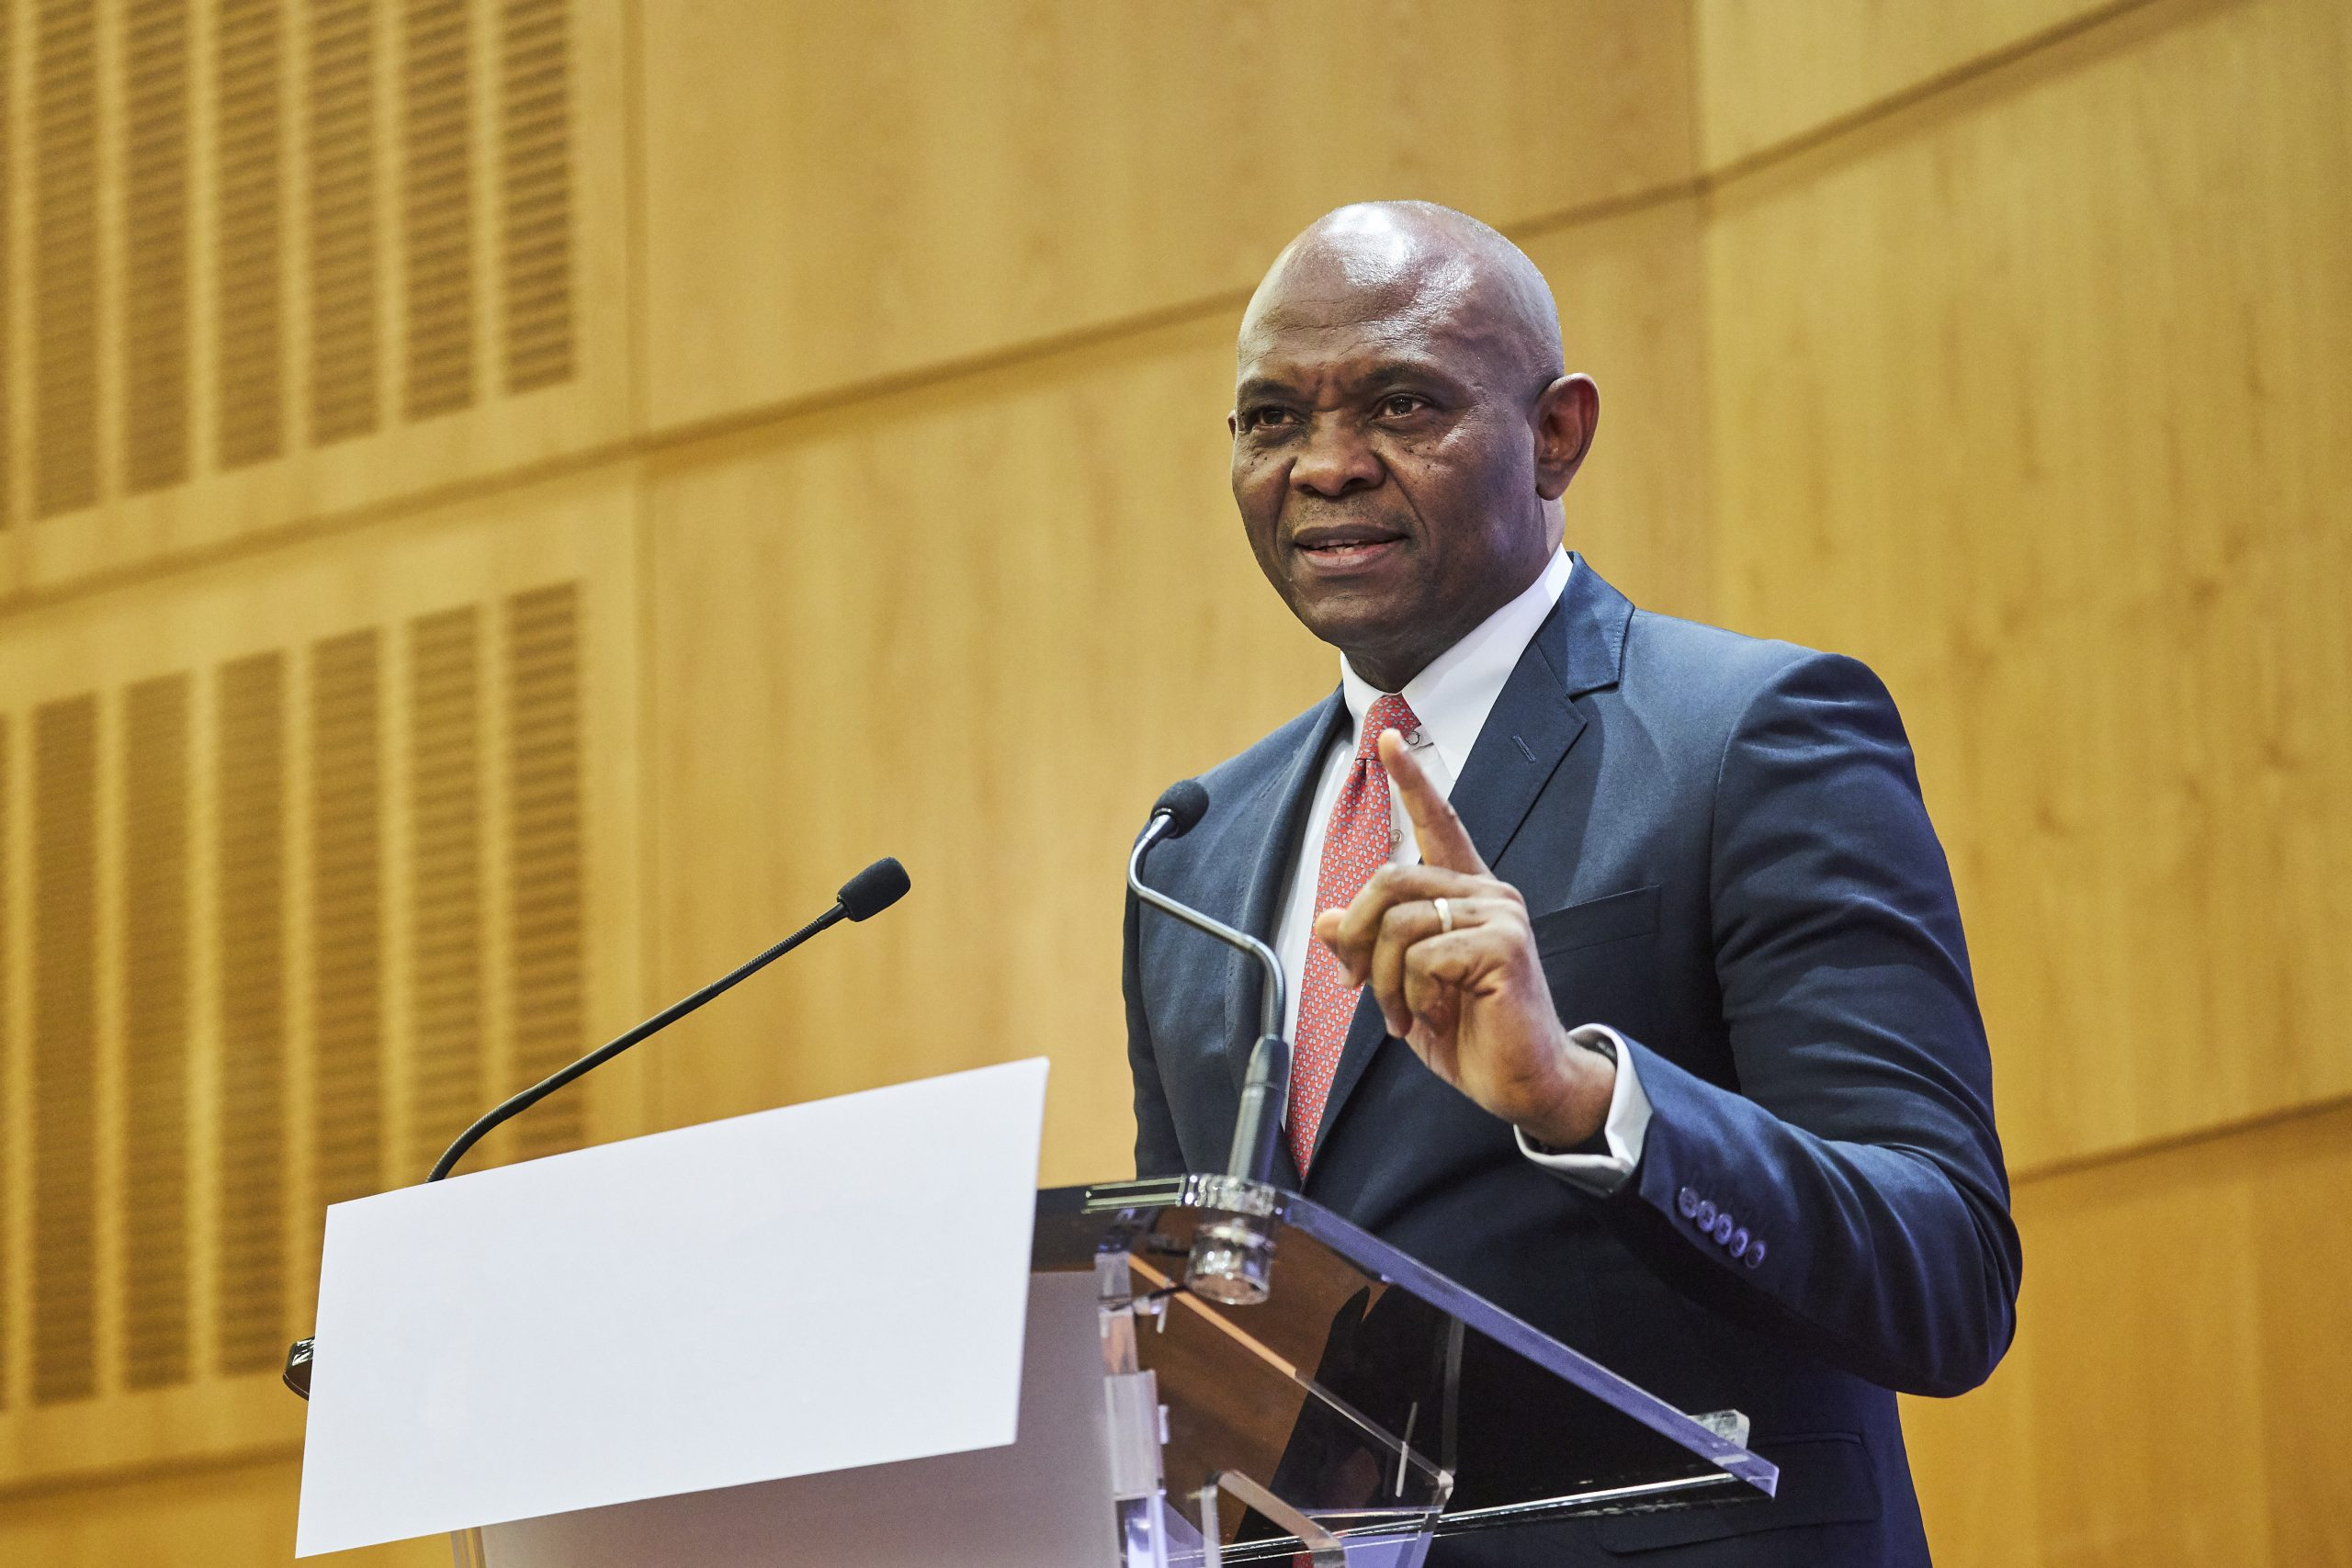 Tony Elumelu to Receive National Productivity Order of Merit (NPOM) Award from the Federal Government of Nigeria